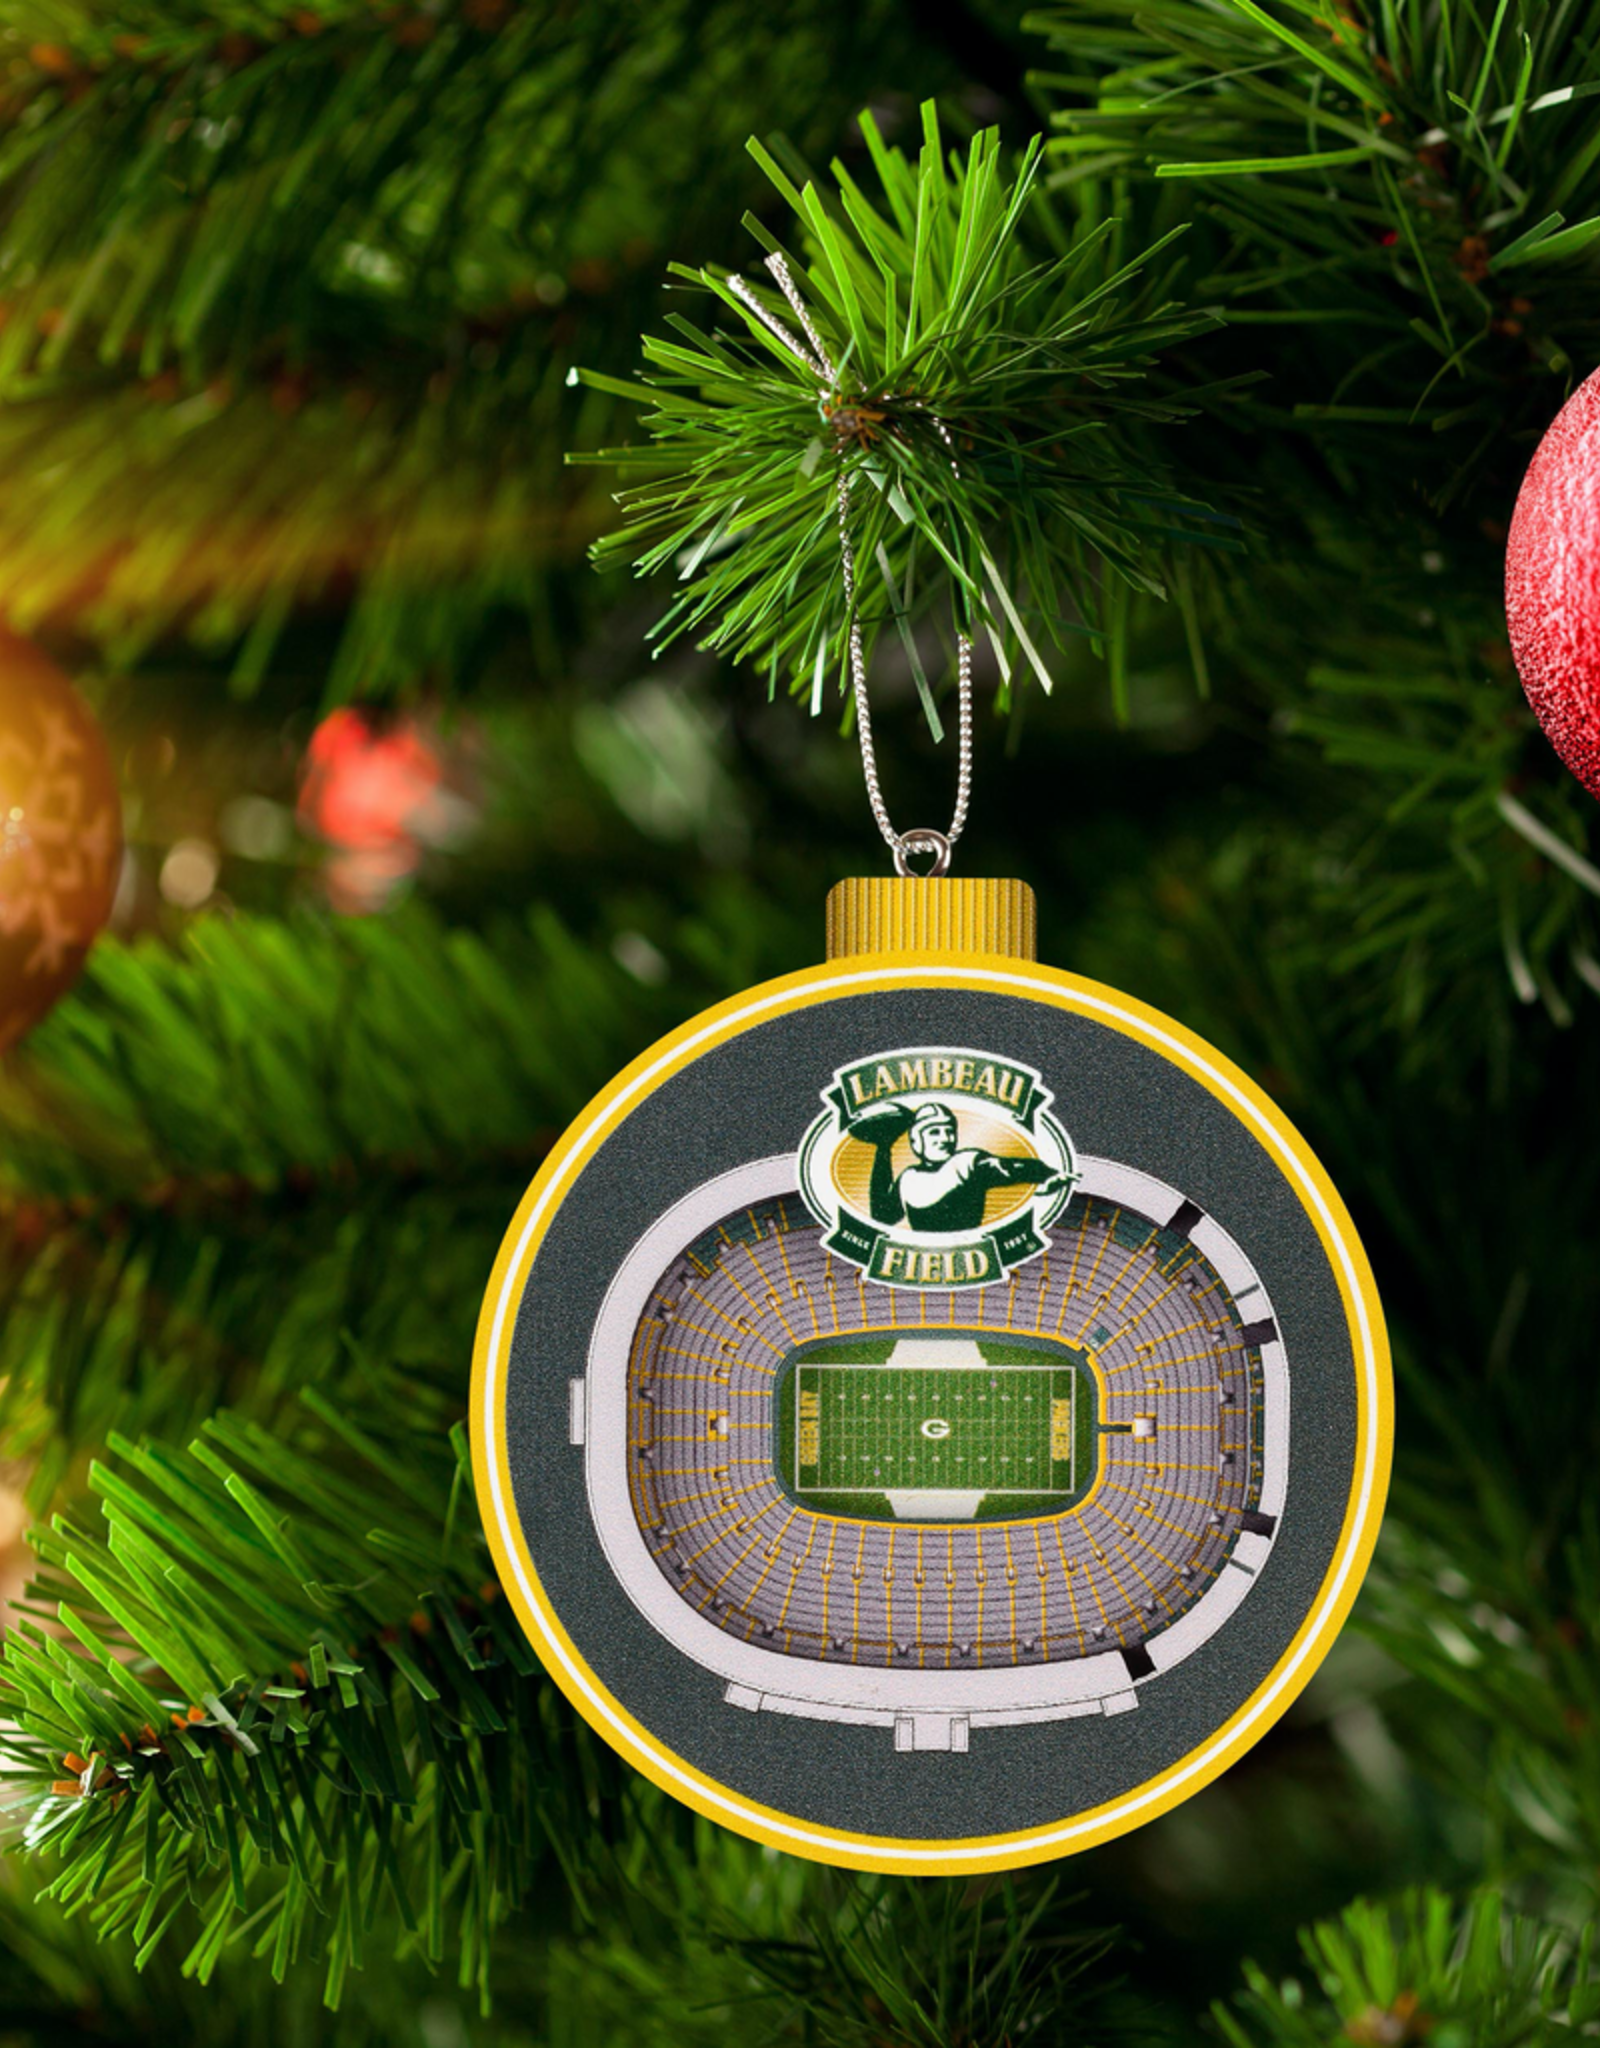 YOU THE FAN Green Bay Packers 3-D StadiumView Ornaments